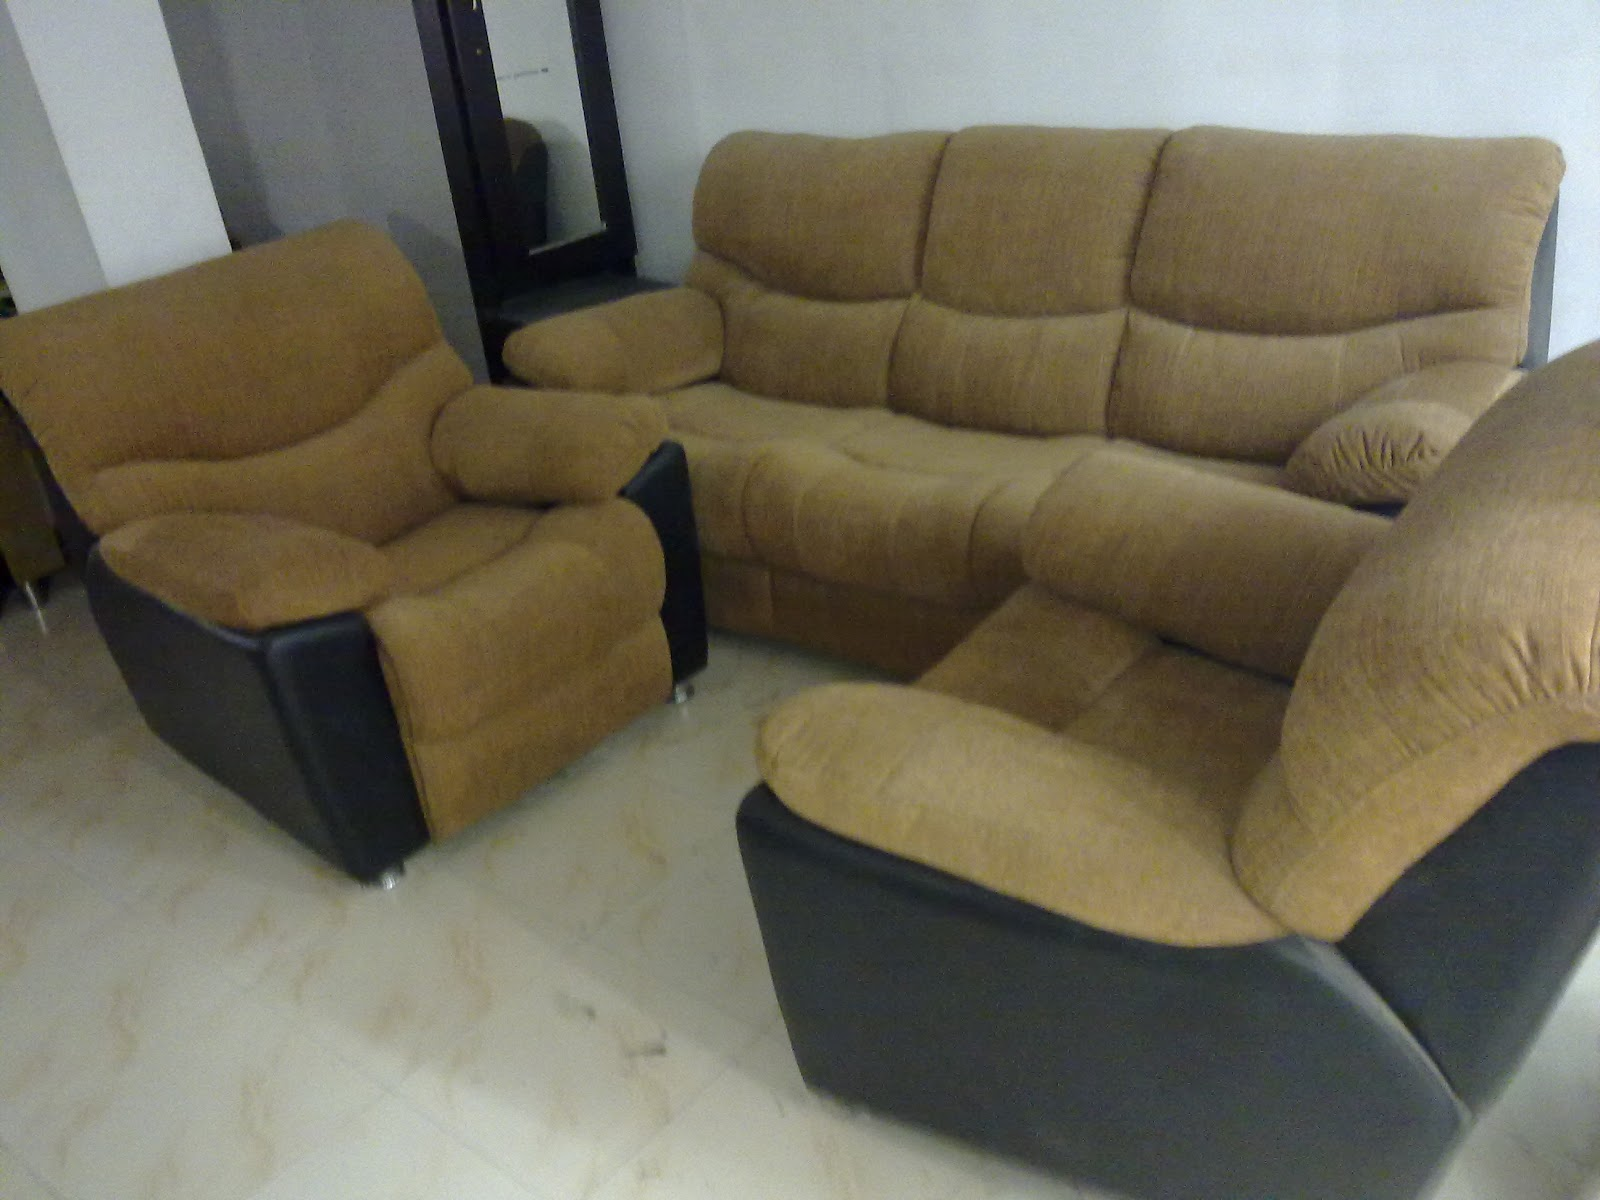 Sofa Set For Sale Hyderabad Union Furniture In Hyderabad And Secunderabad Sofa Sets